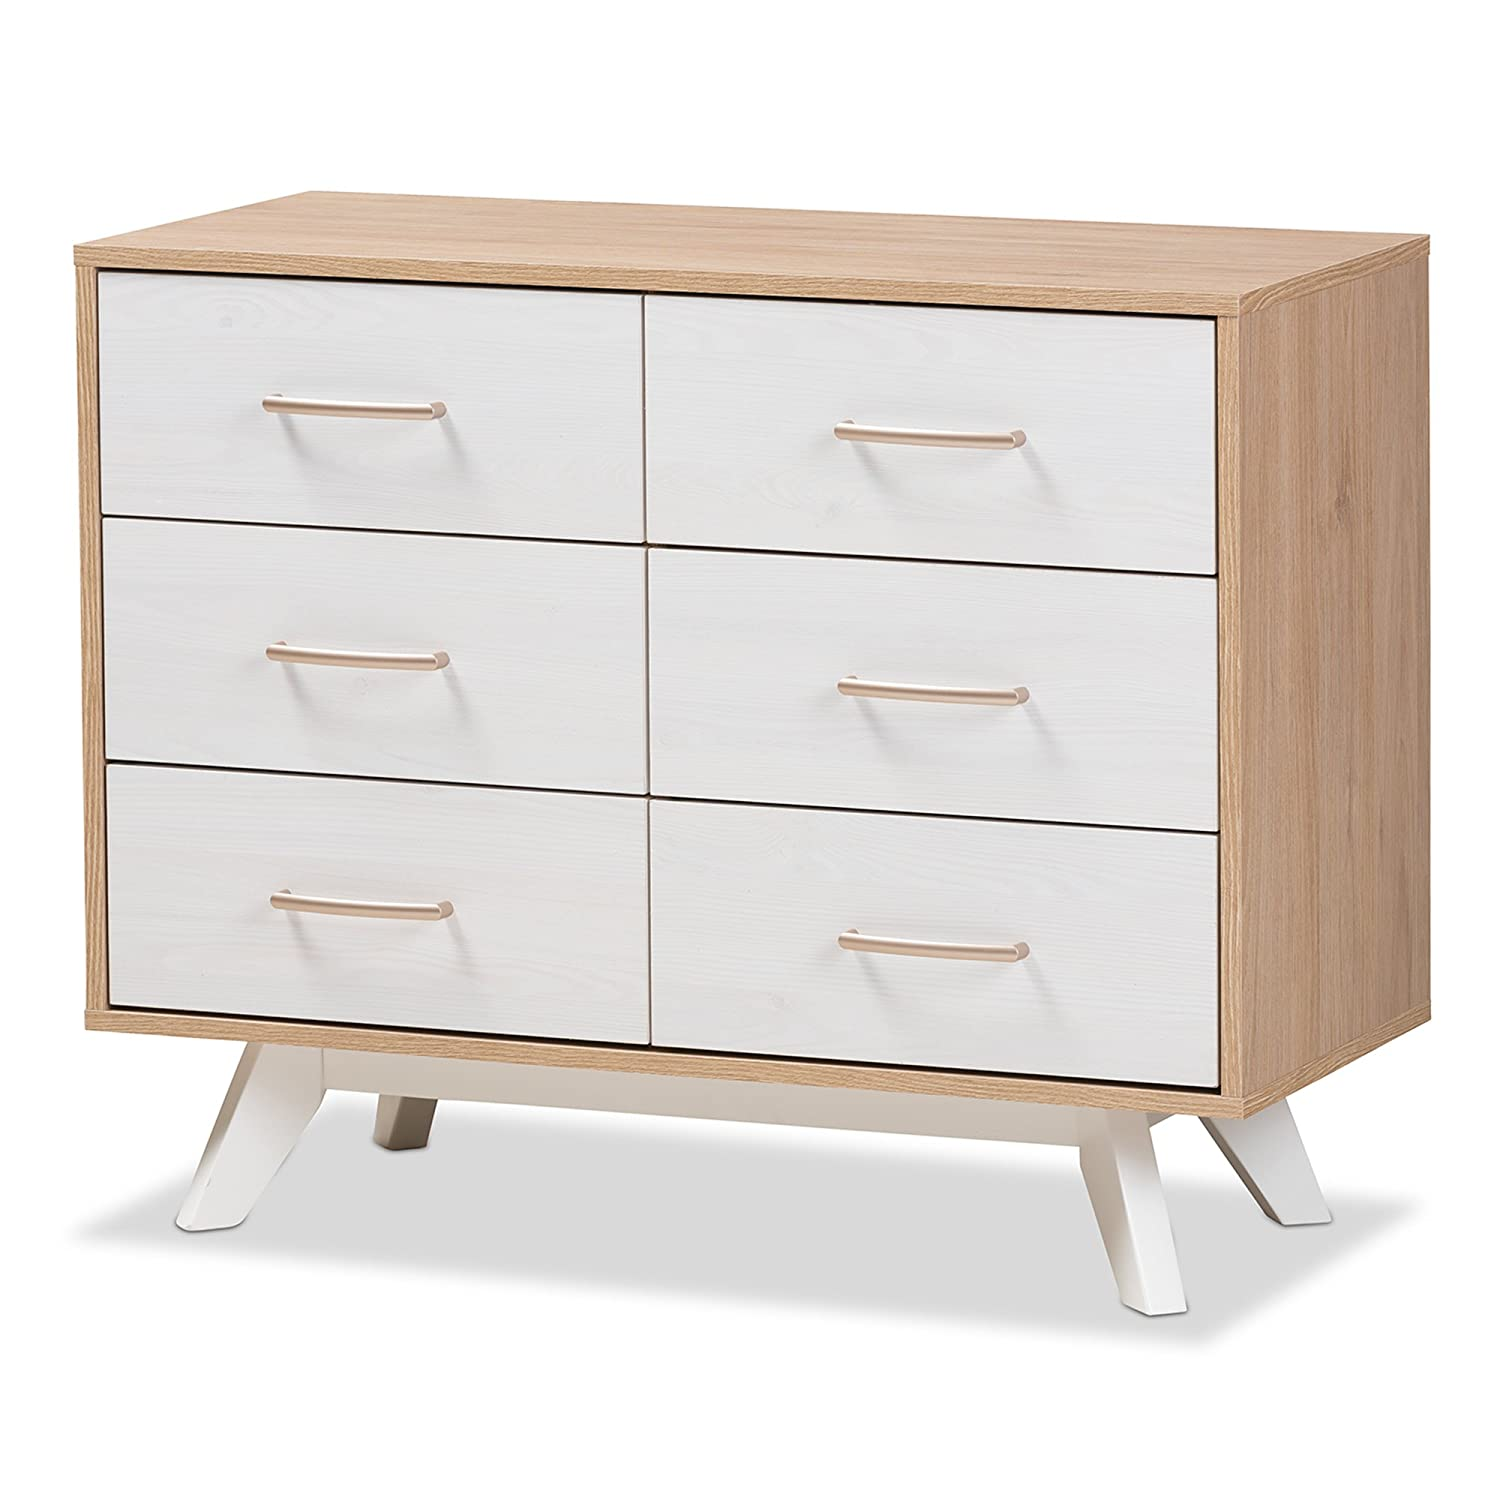 Baxton Studio 6-Drawer Dresser in Whitewashed Finish